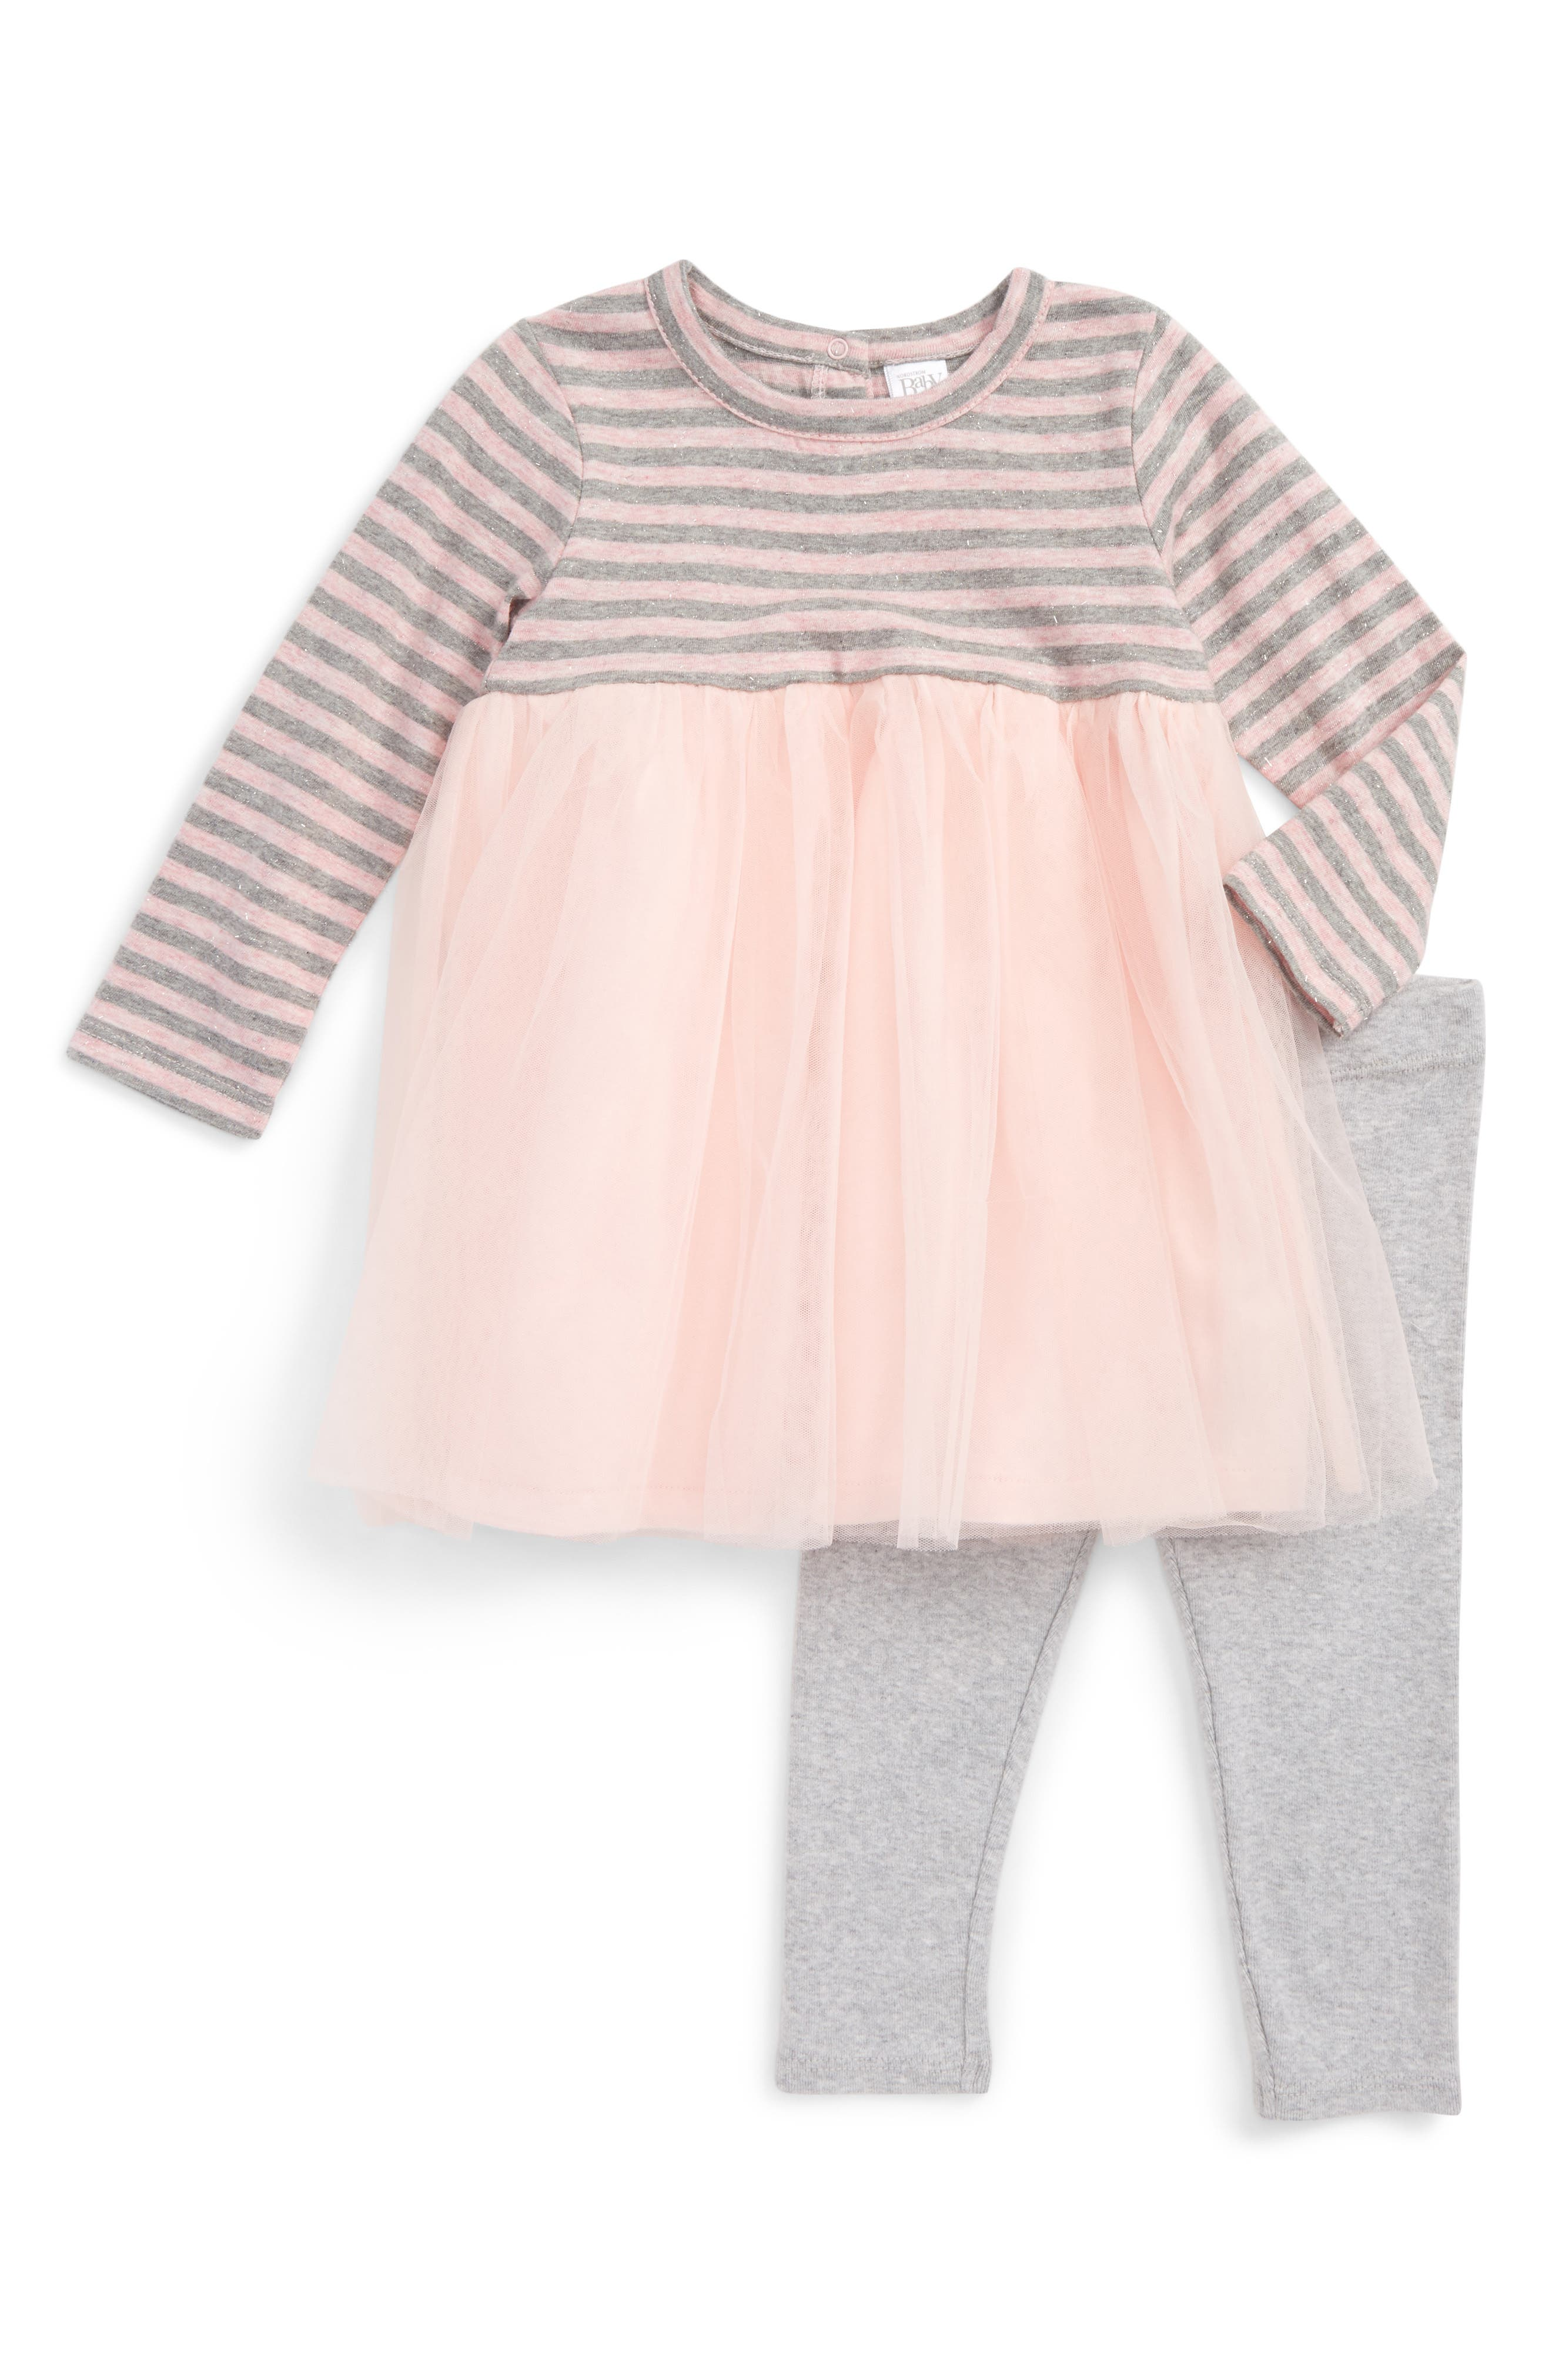 Main Image - Nordstrom Baby Dress & Leggings Set (Baby Girls)